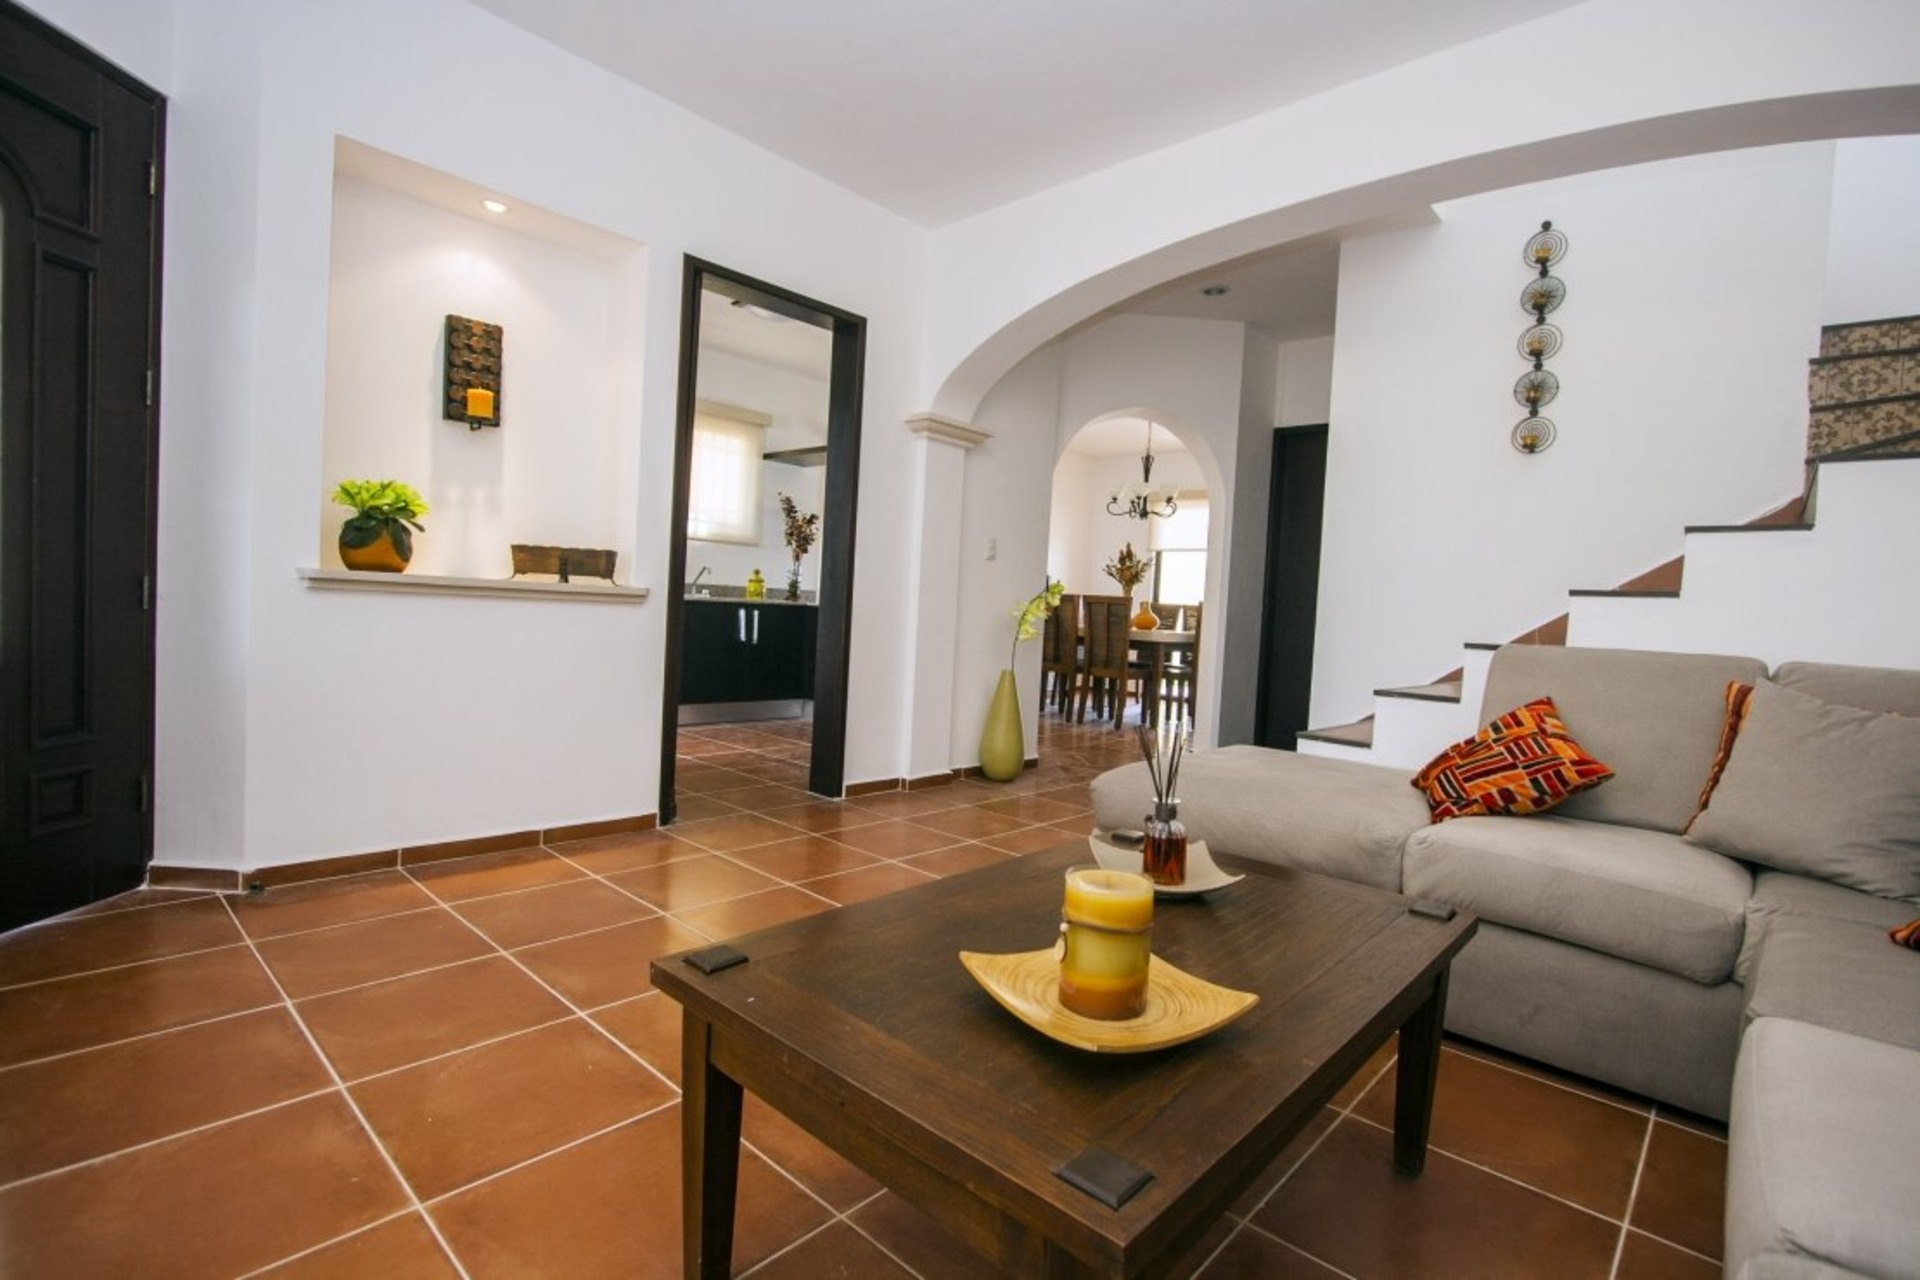 image 2 - House For sale Autres pays / Other countries - 9 rooms